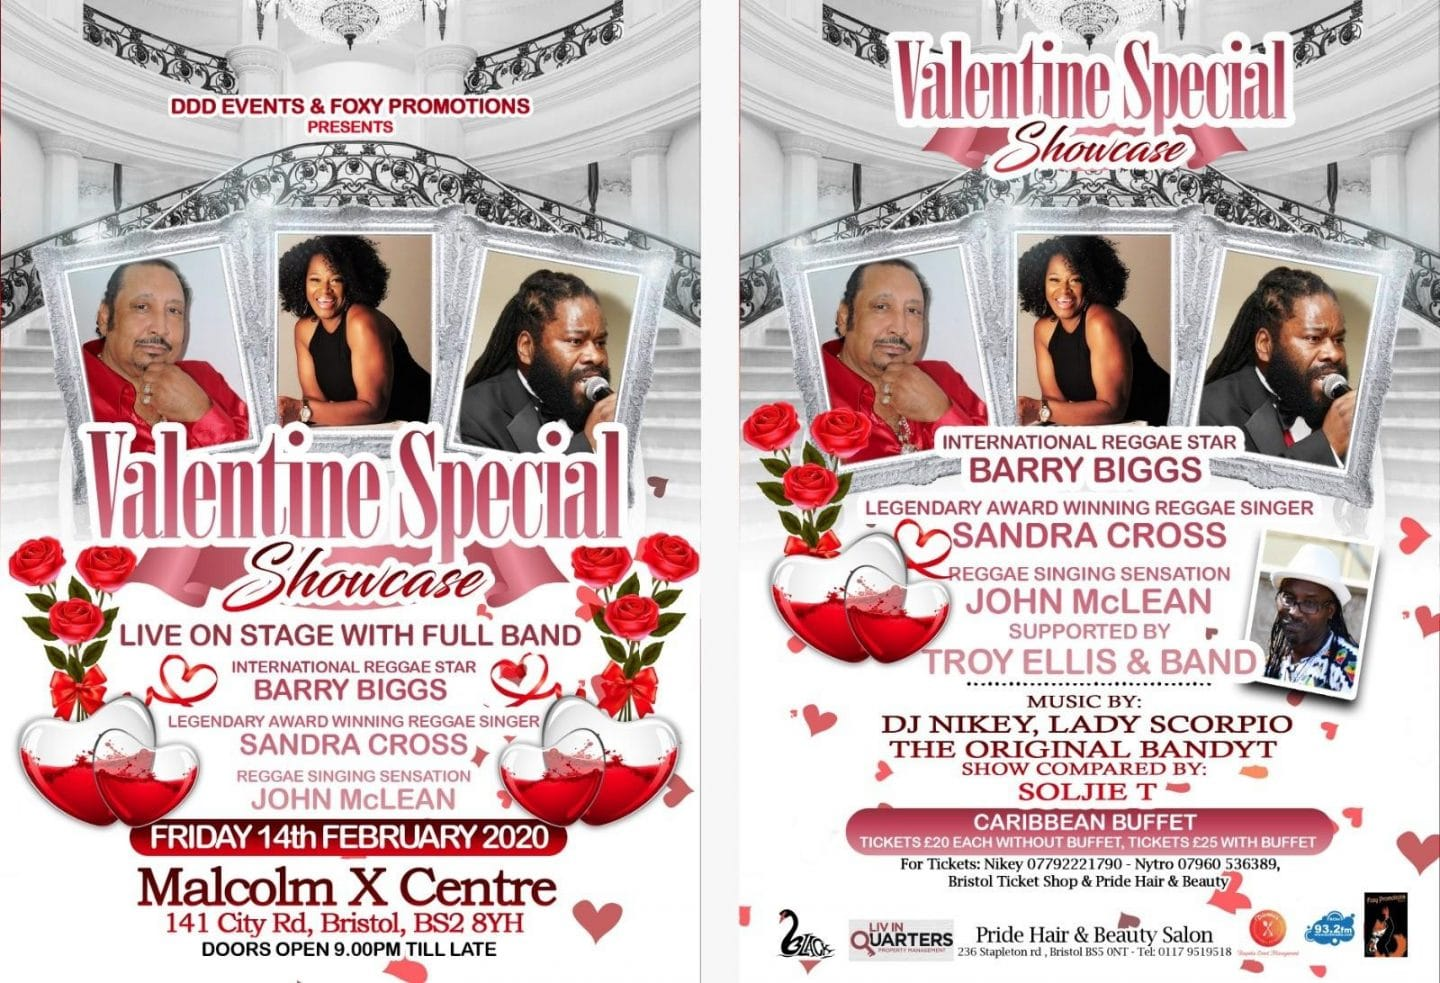 A Valentine's Special Showcase – Friday 14th February 2020